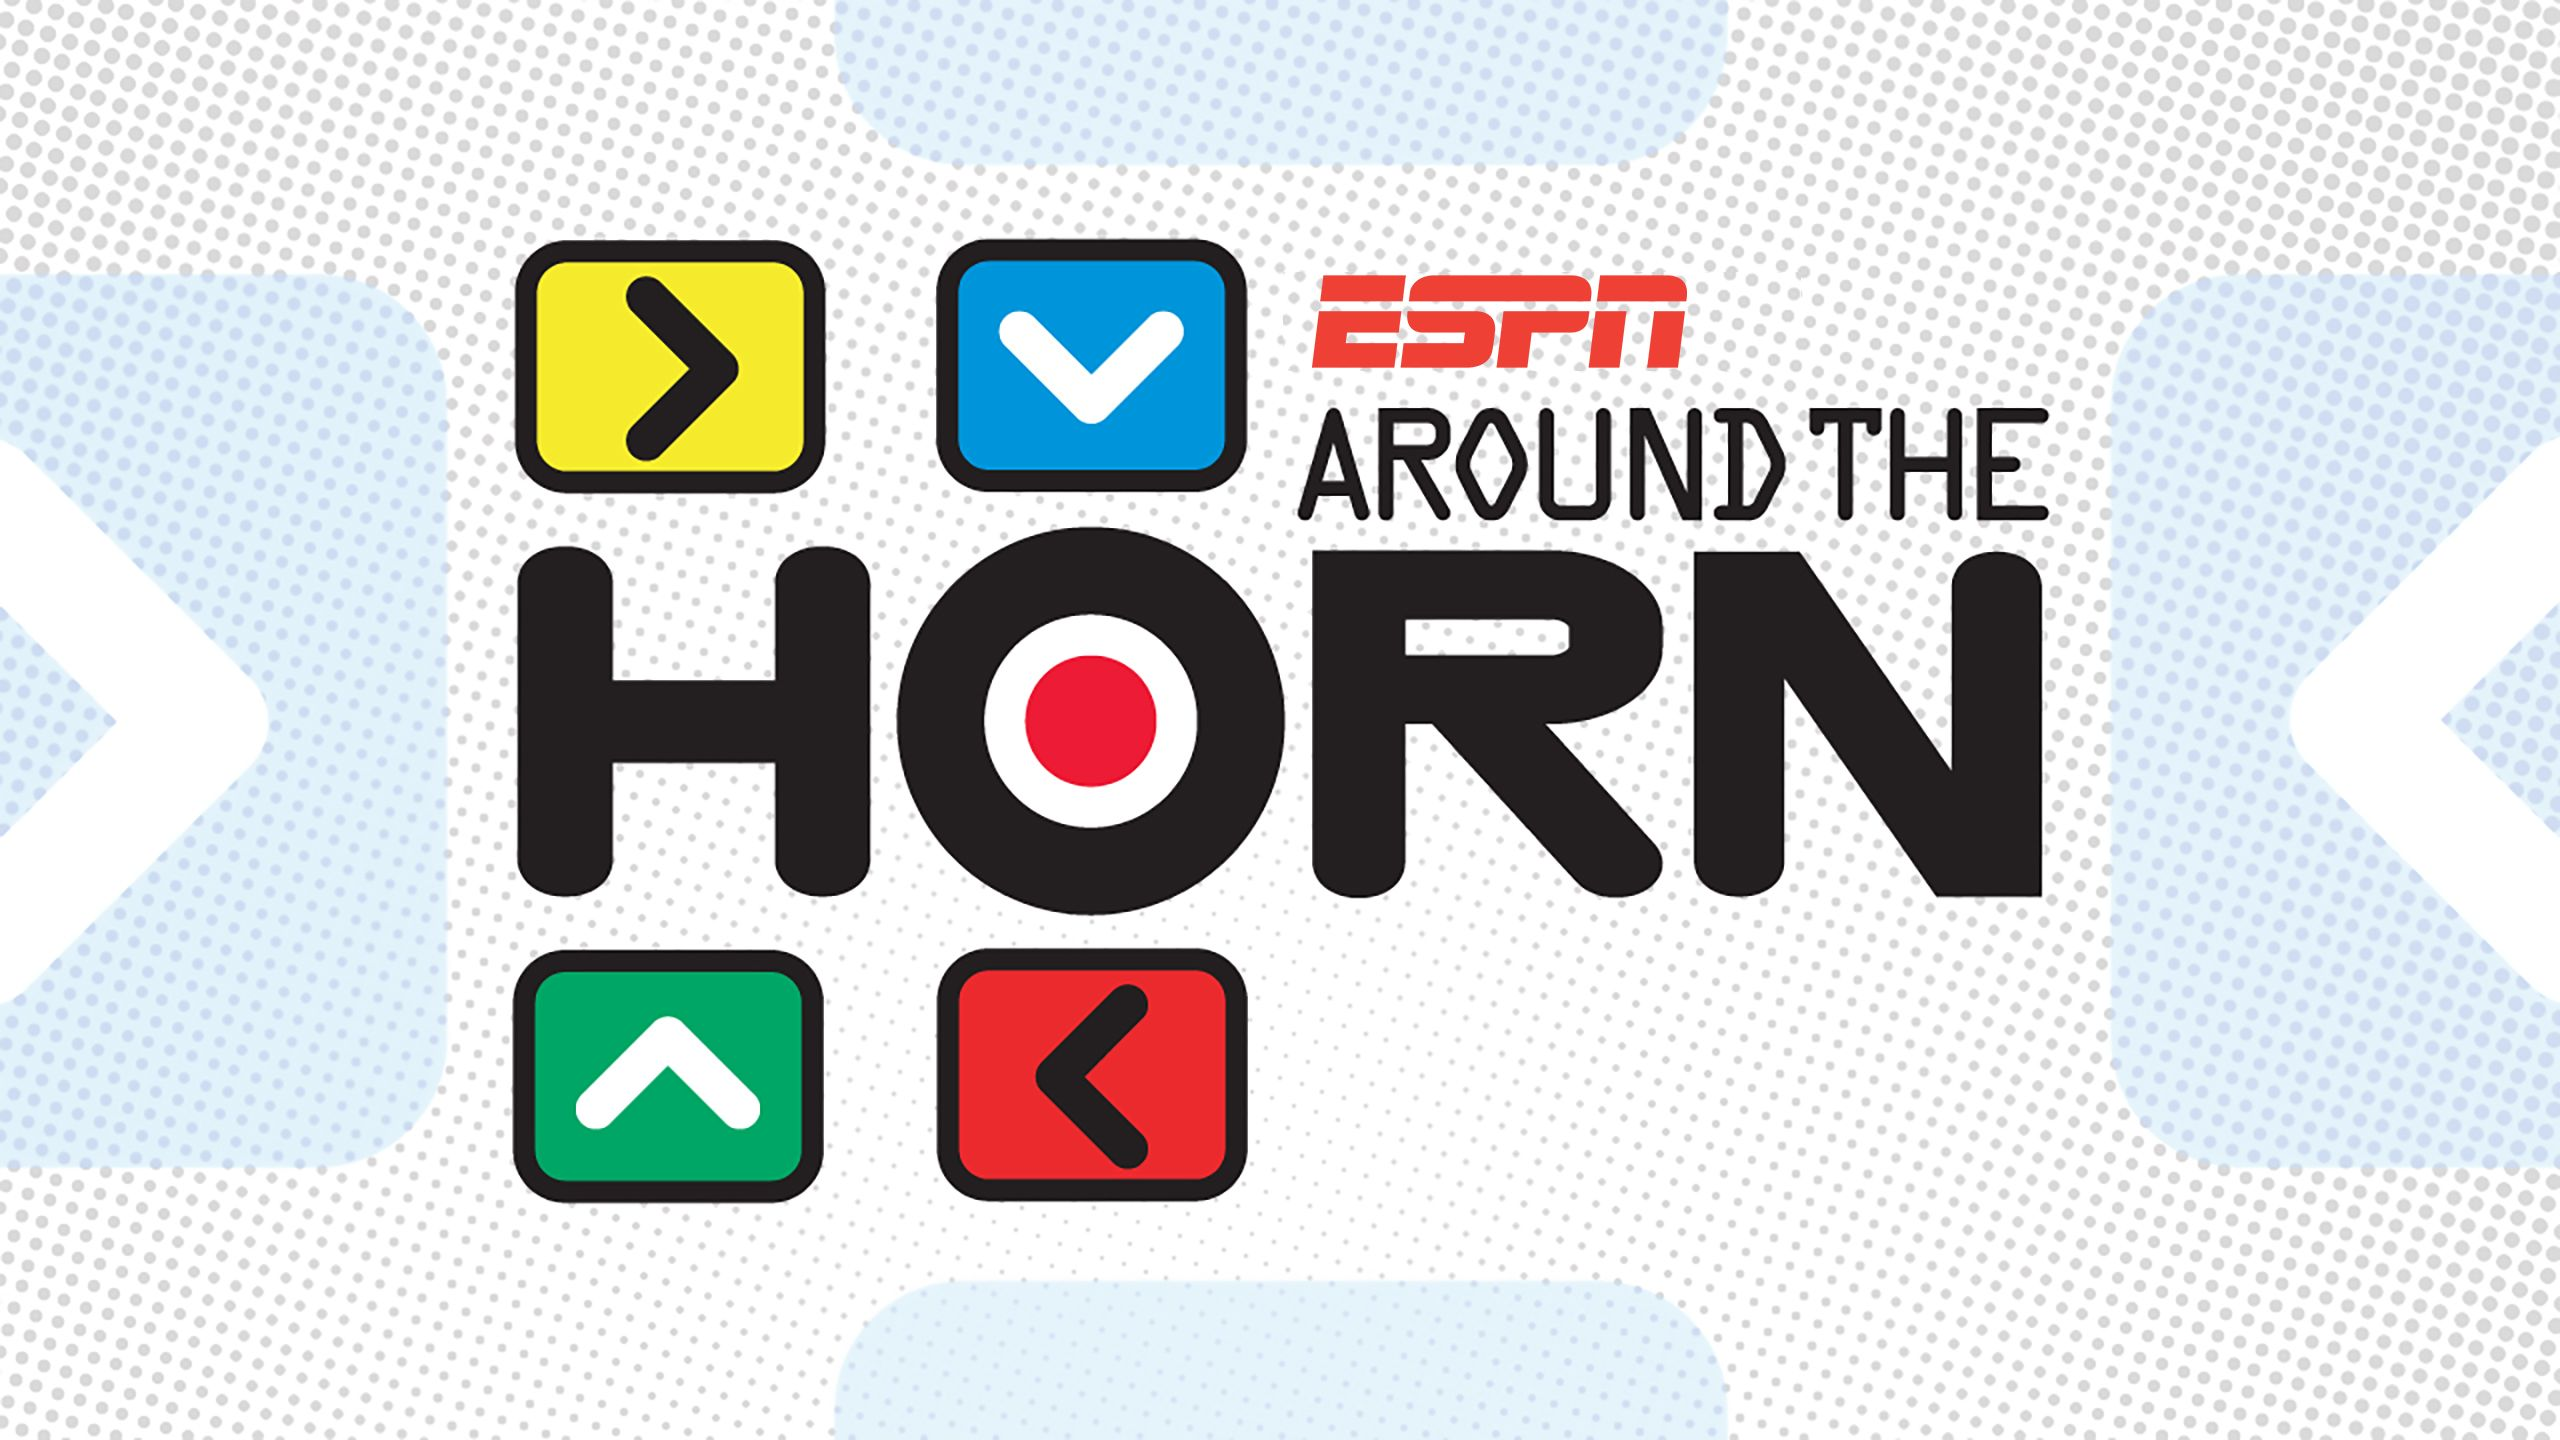 Tue, 6/19 - Around The Horn